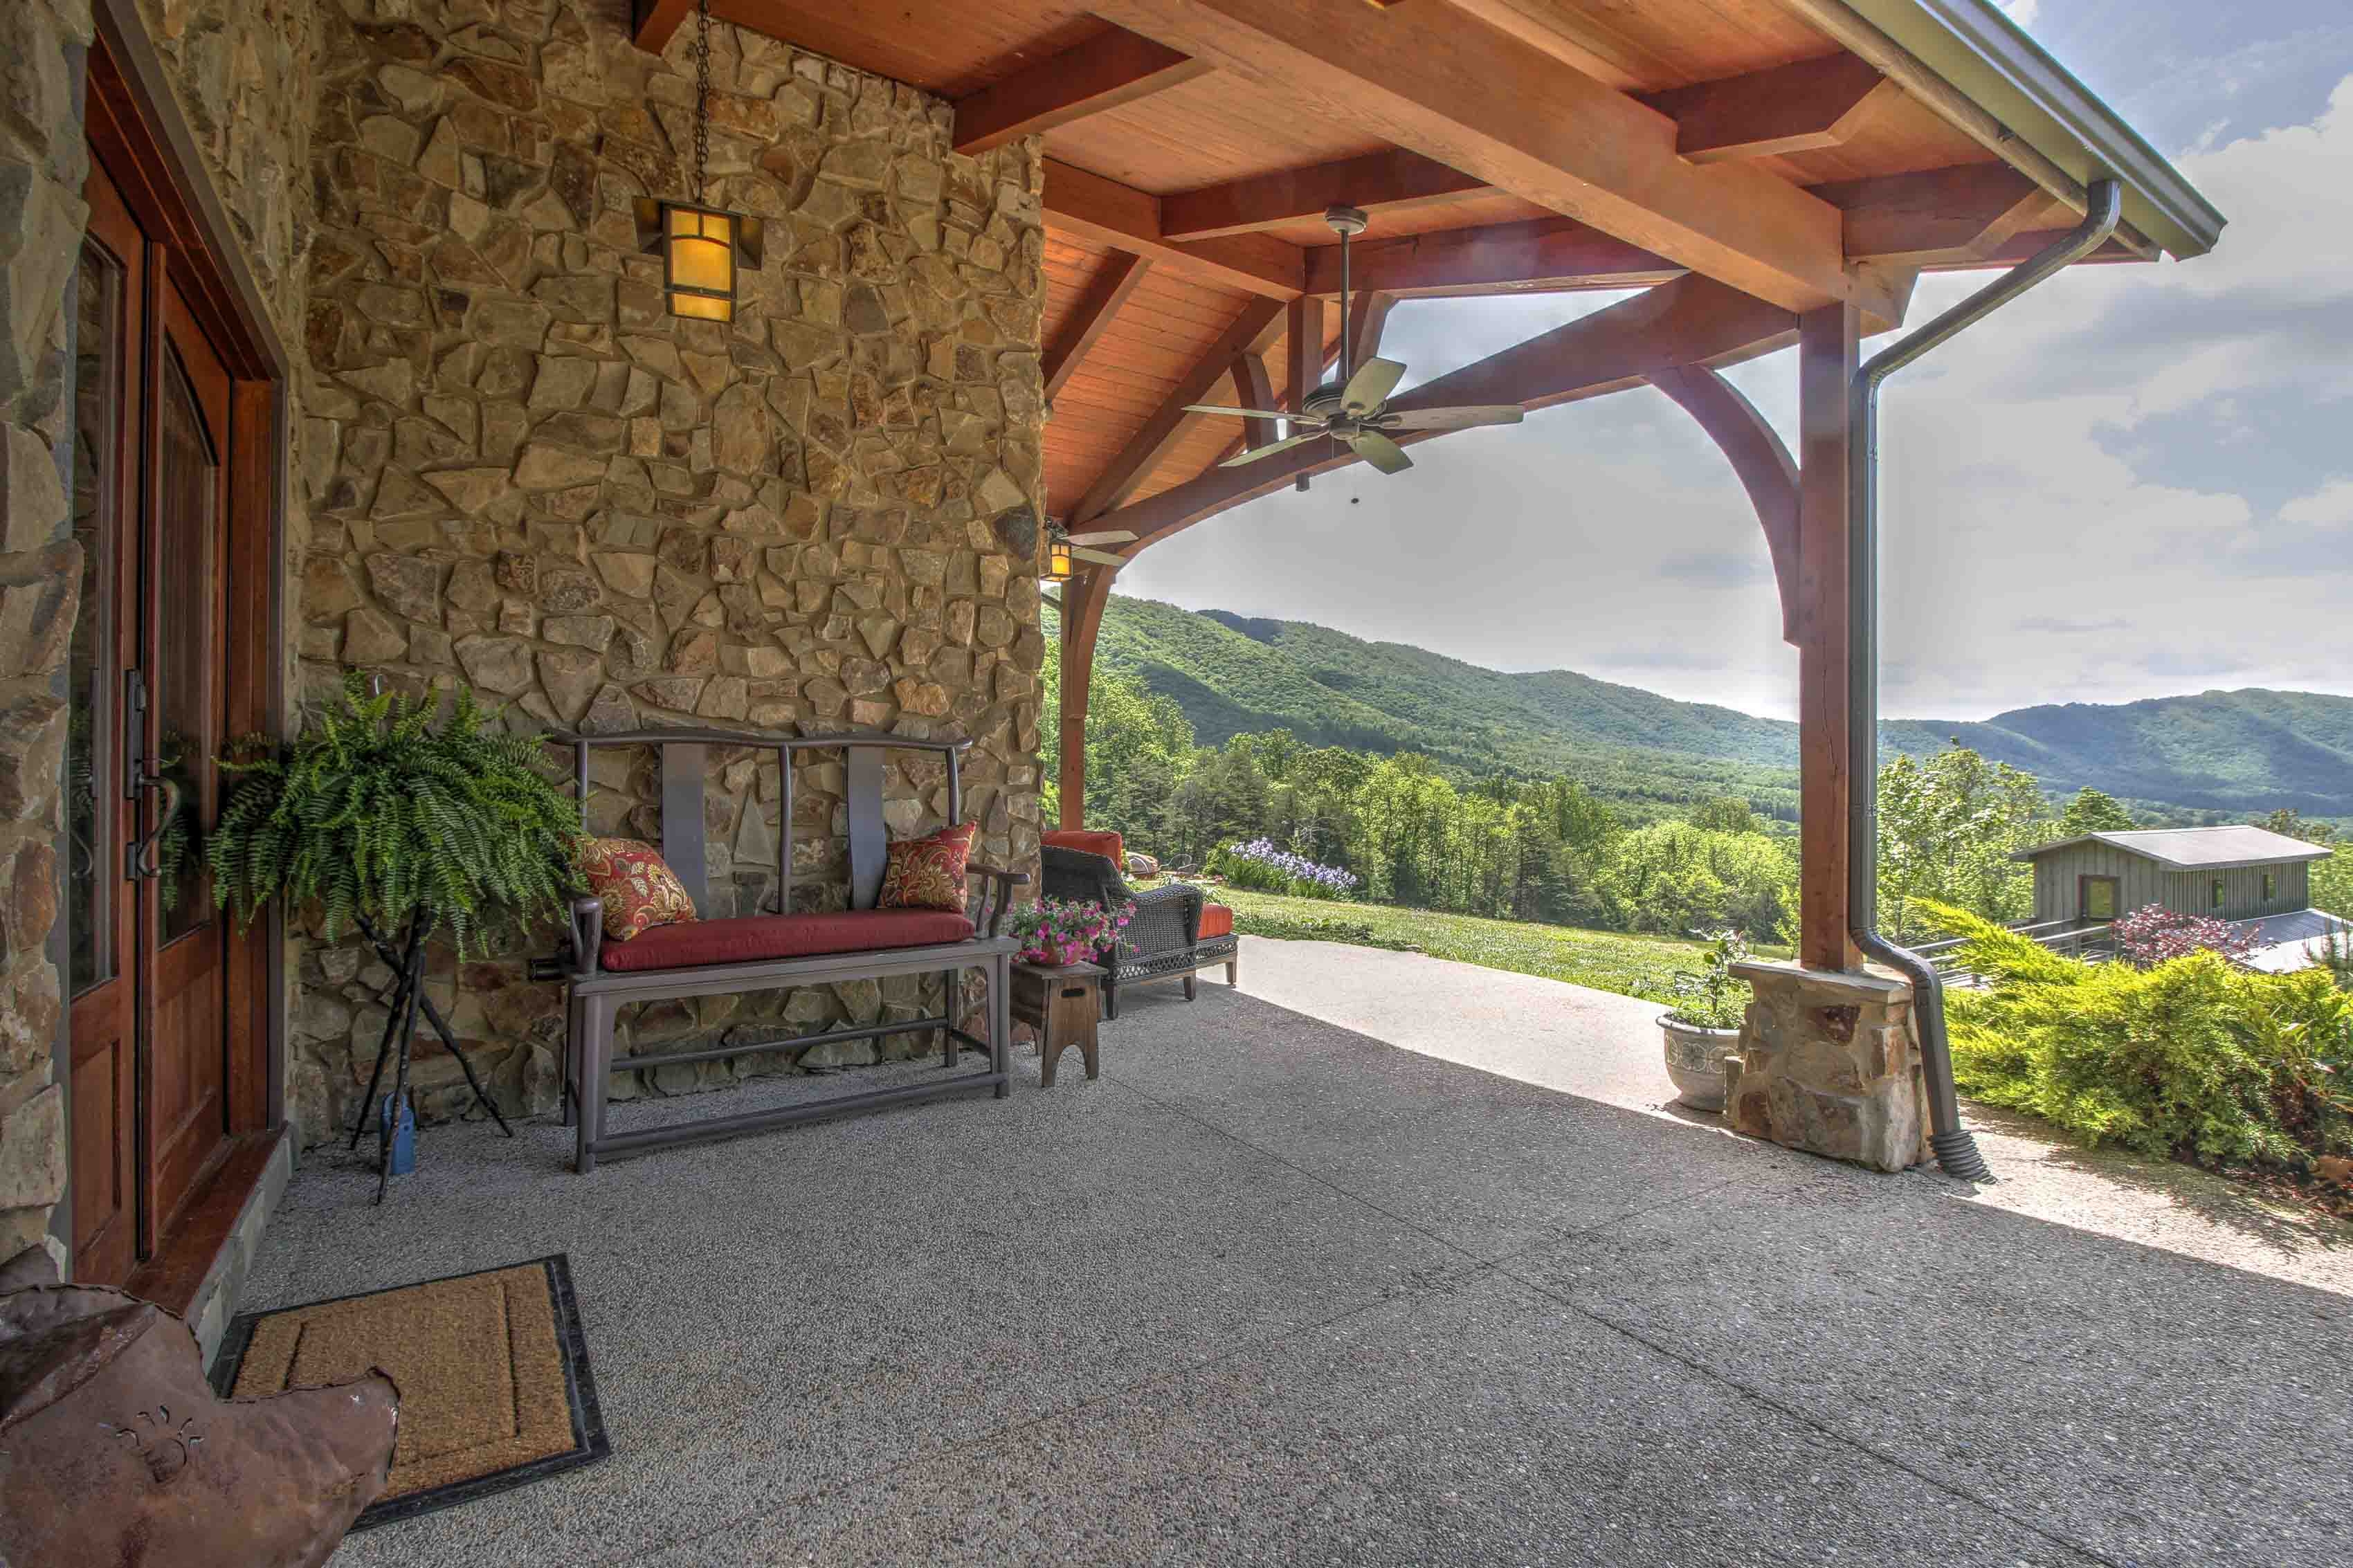 example of a timber frame porch featuring white oak with natural stone pedestals overlooking a mountain valley near Smith Mountain Lake, by Timber Ridge Craftsmen Inc. - Moneta, Virginia